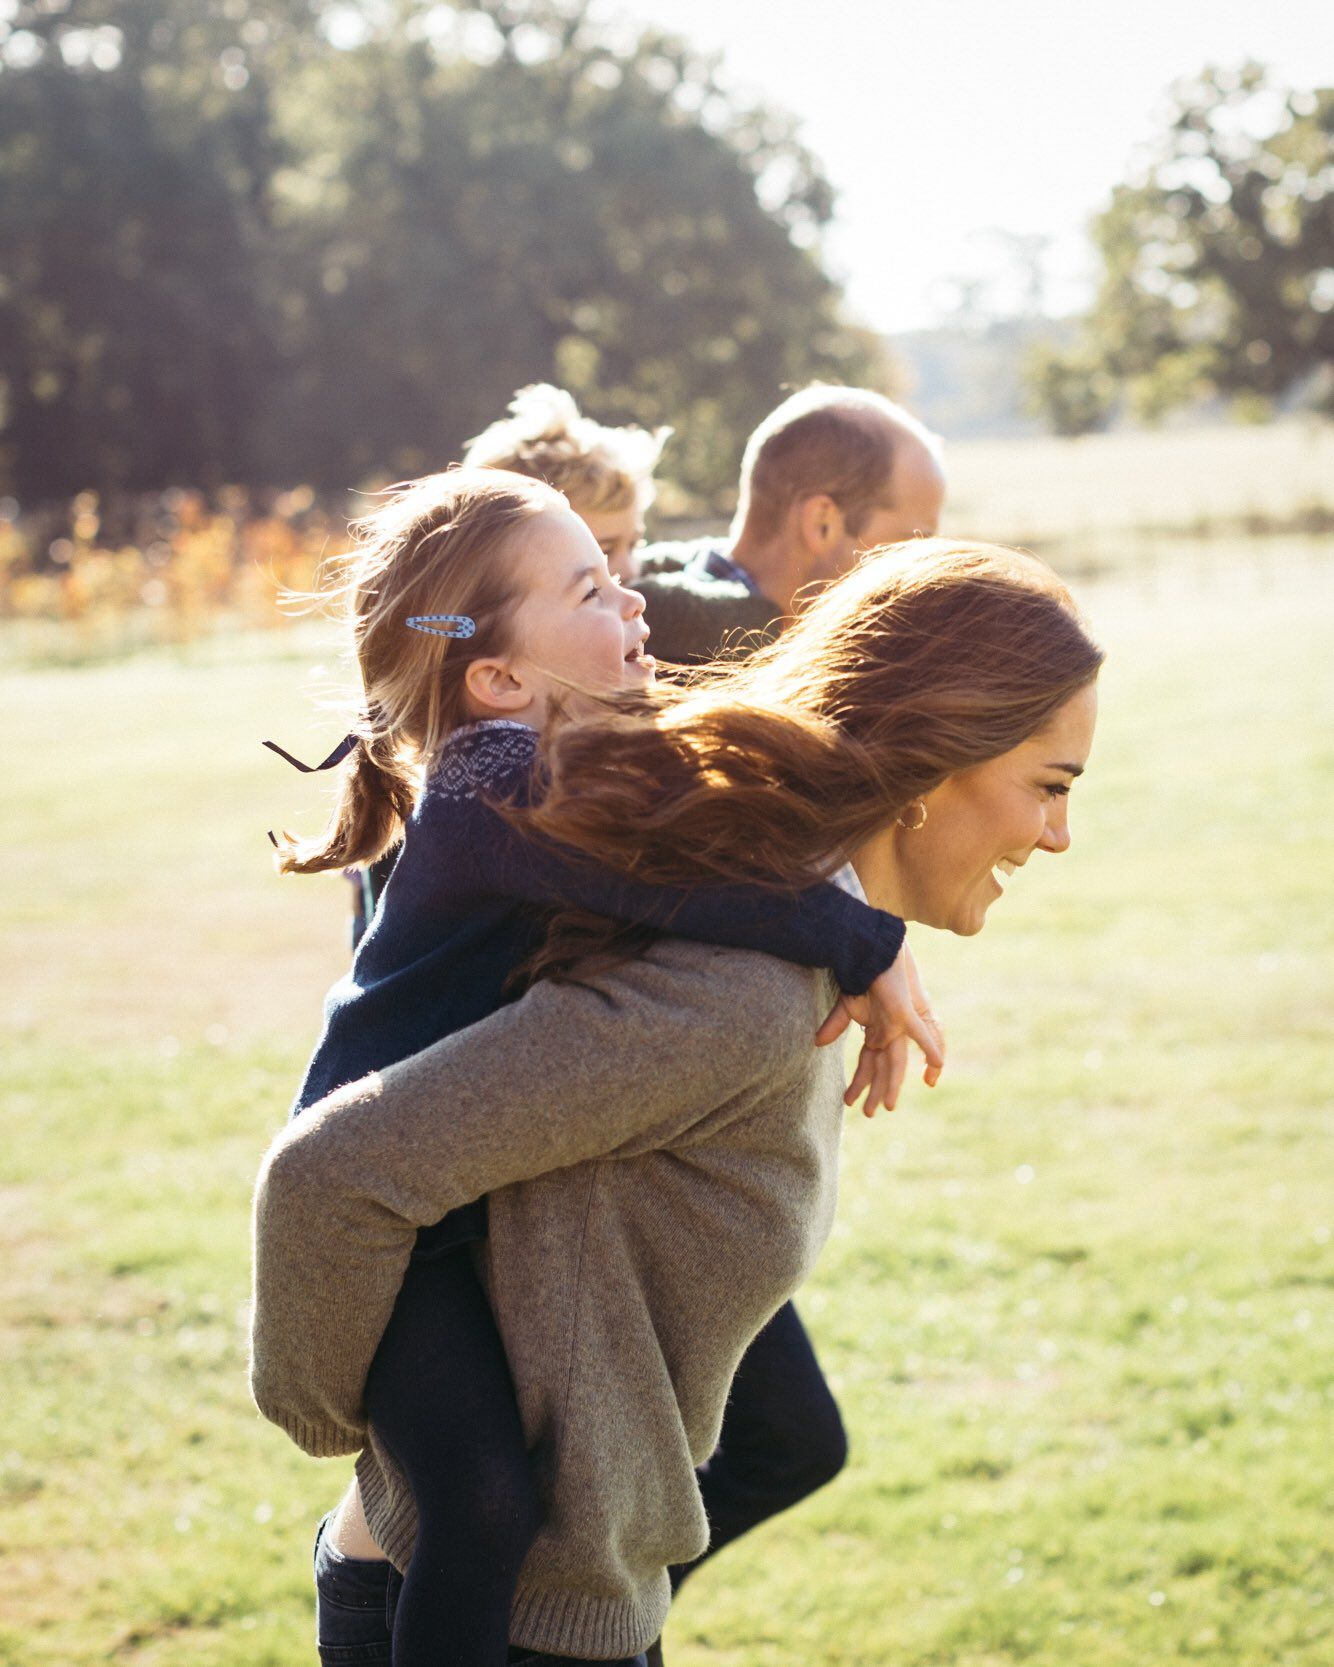 Birthdays and Homeschooling: What are the British Royal Children Up To During the Covid-19 Lockdown?